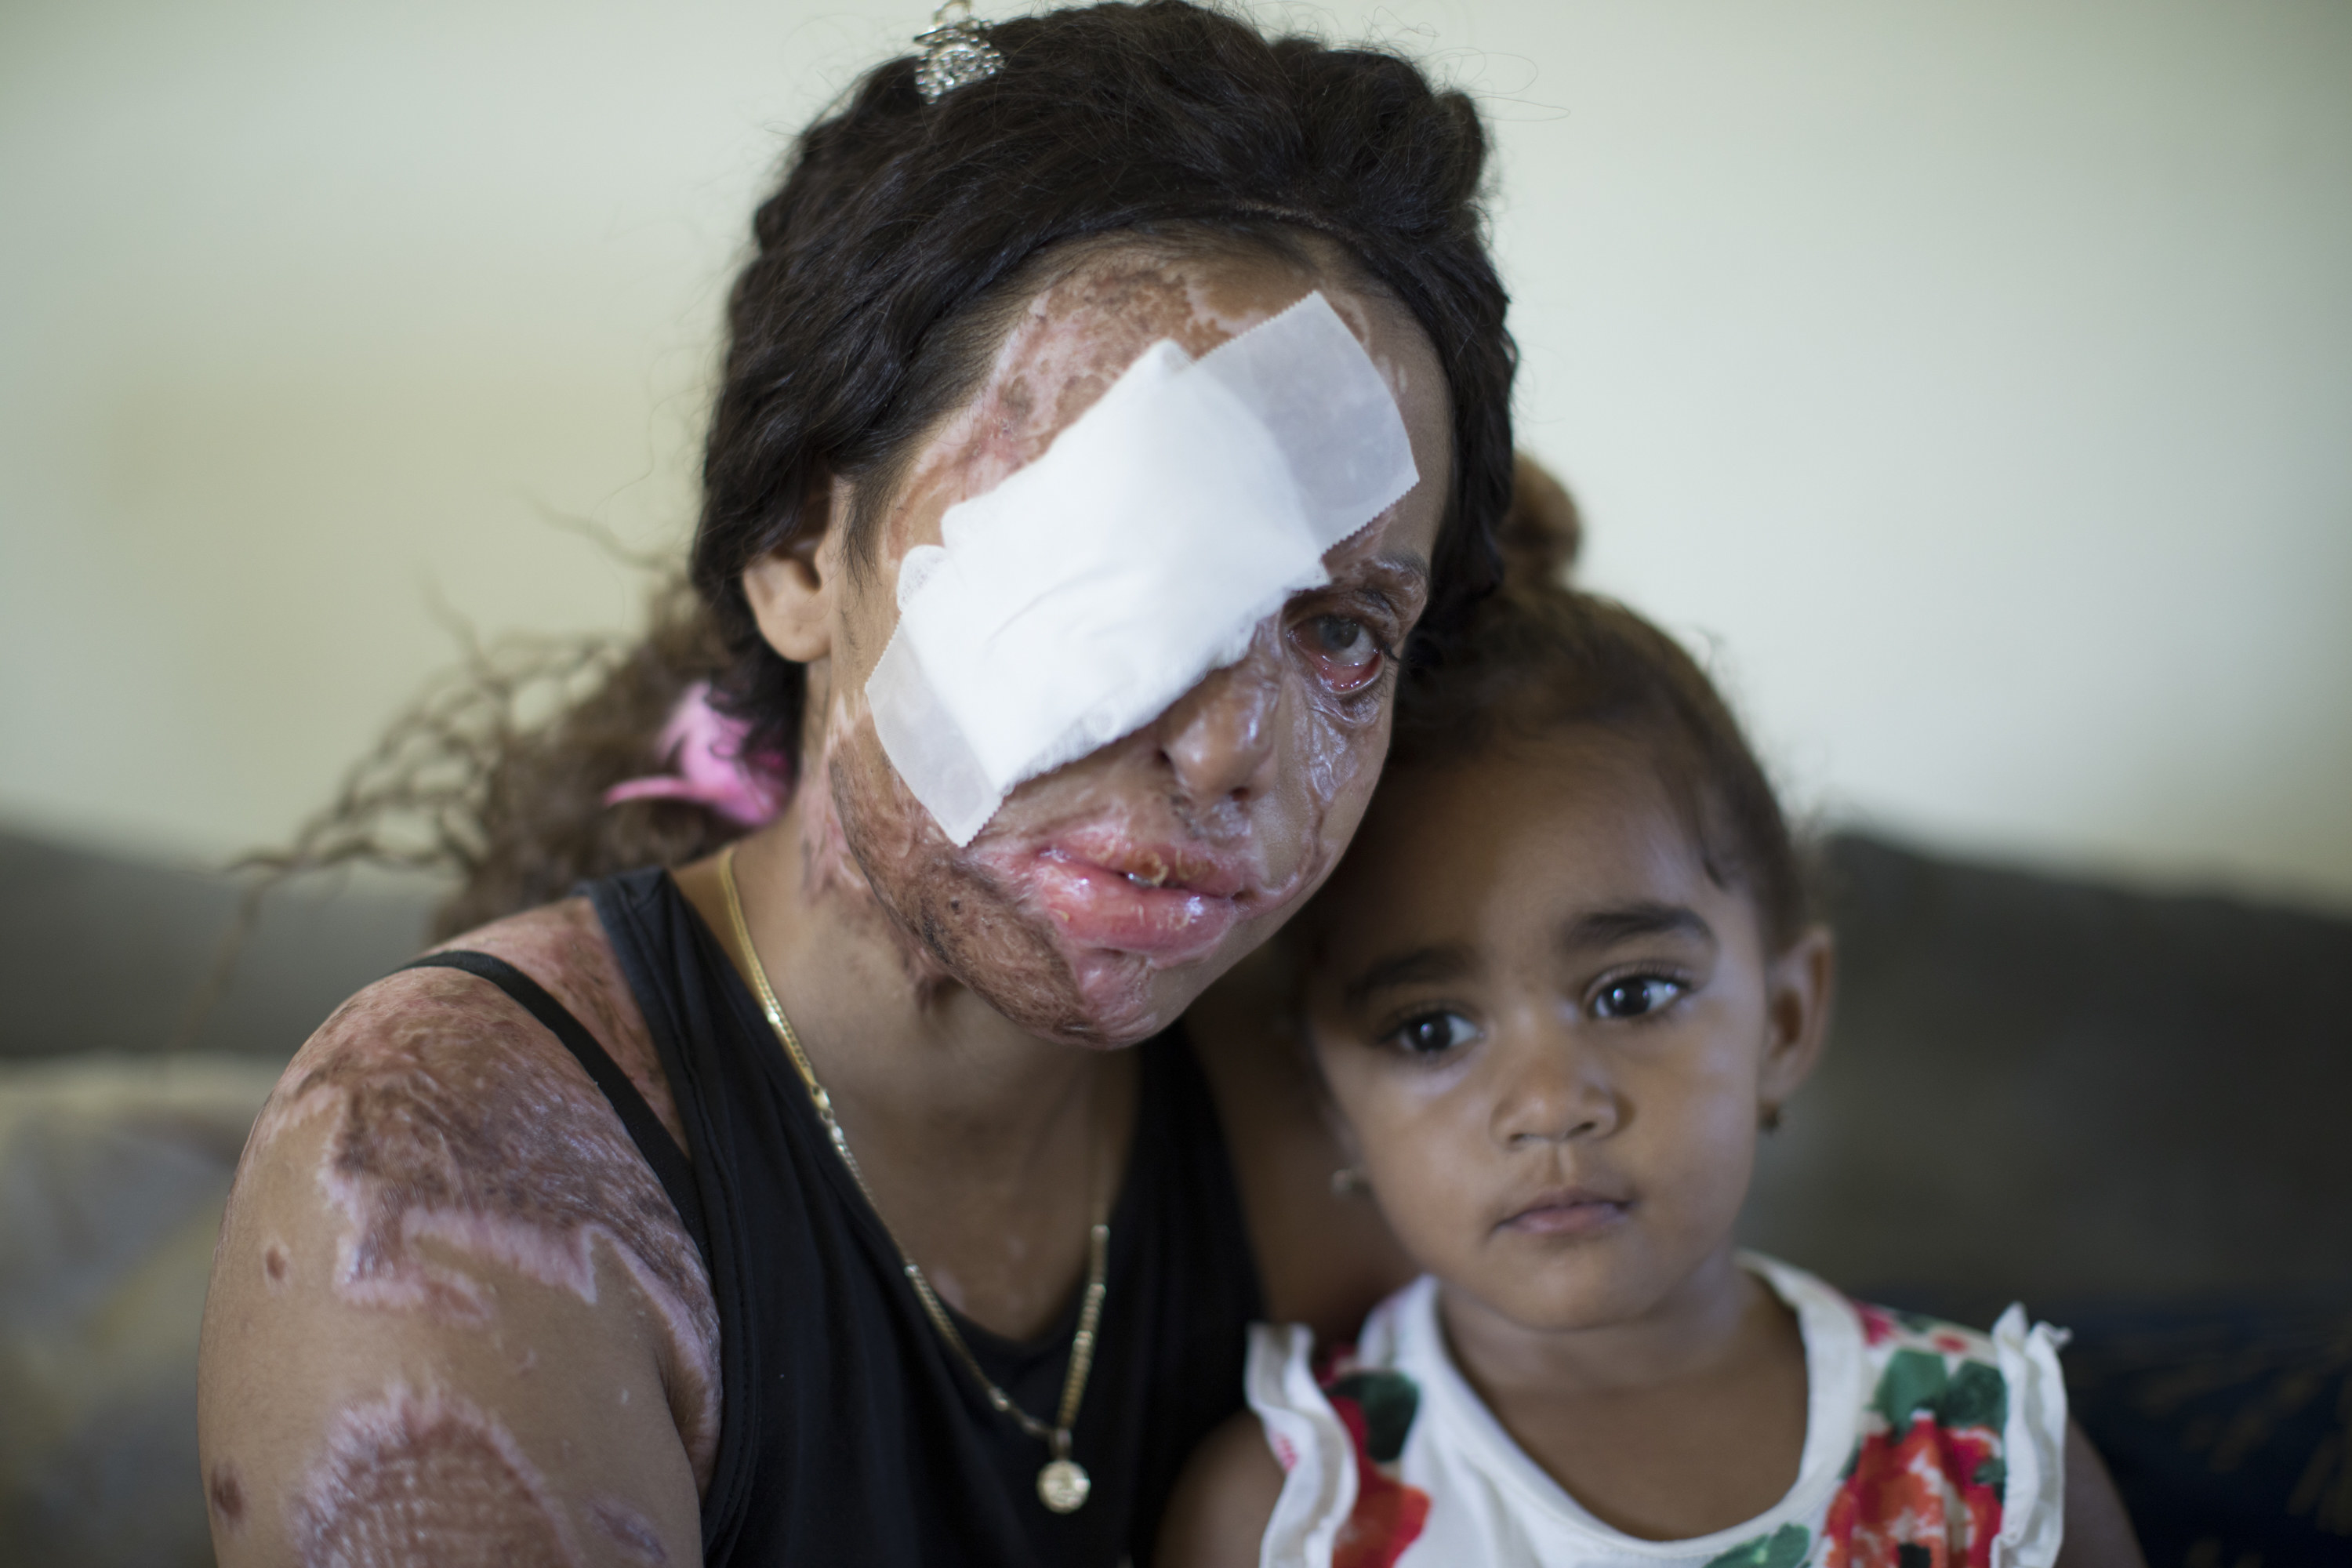 A woman with a bandaged eye and scars on her face and arms sits beside her young daughter